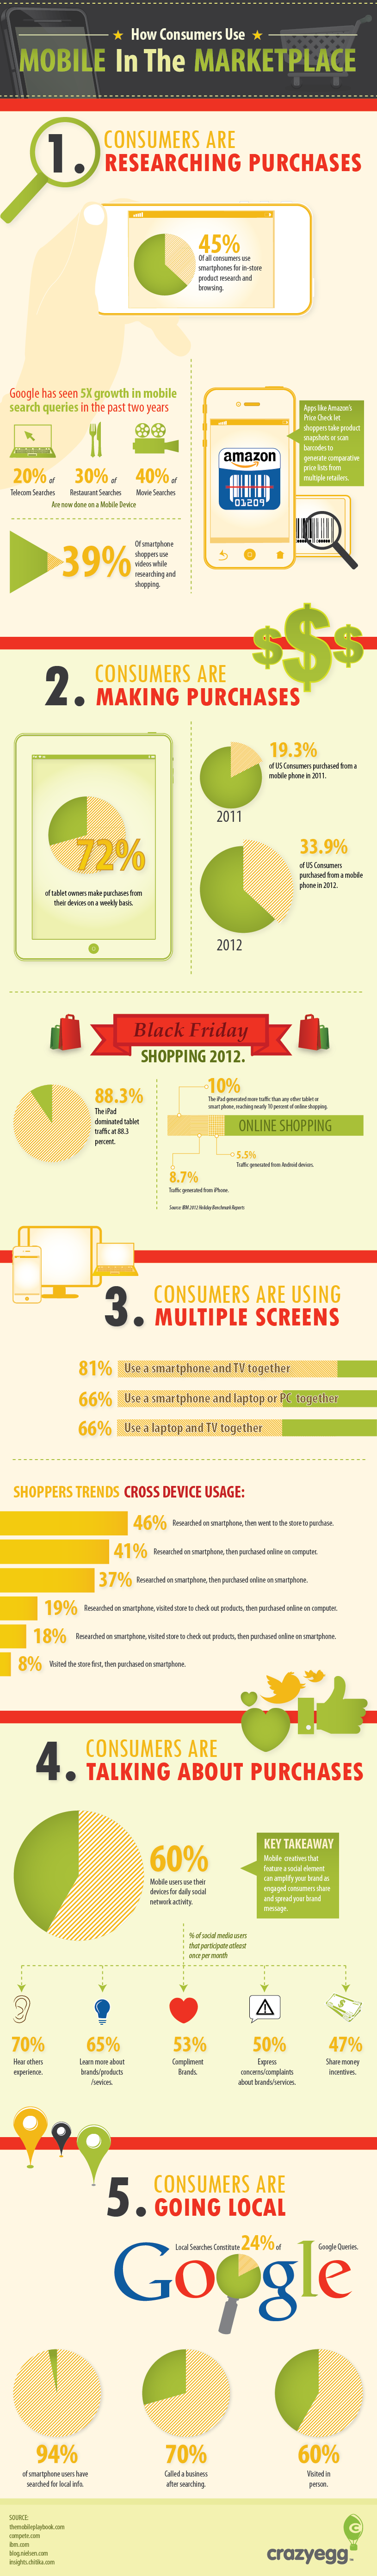 How Consumers Use Mobile In The Marketplace